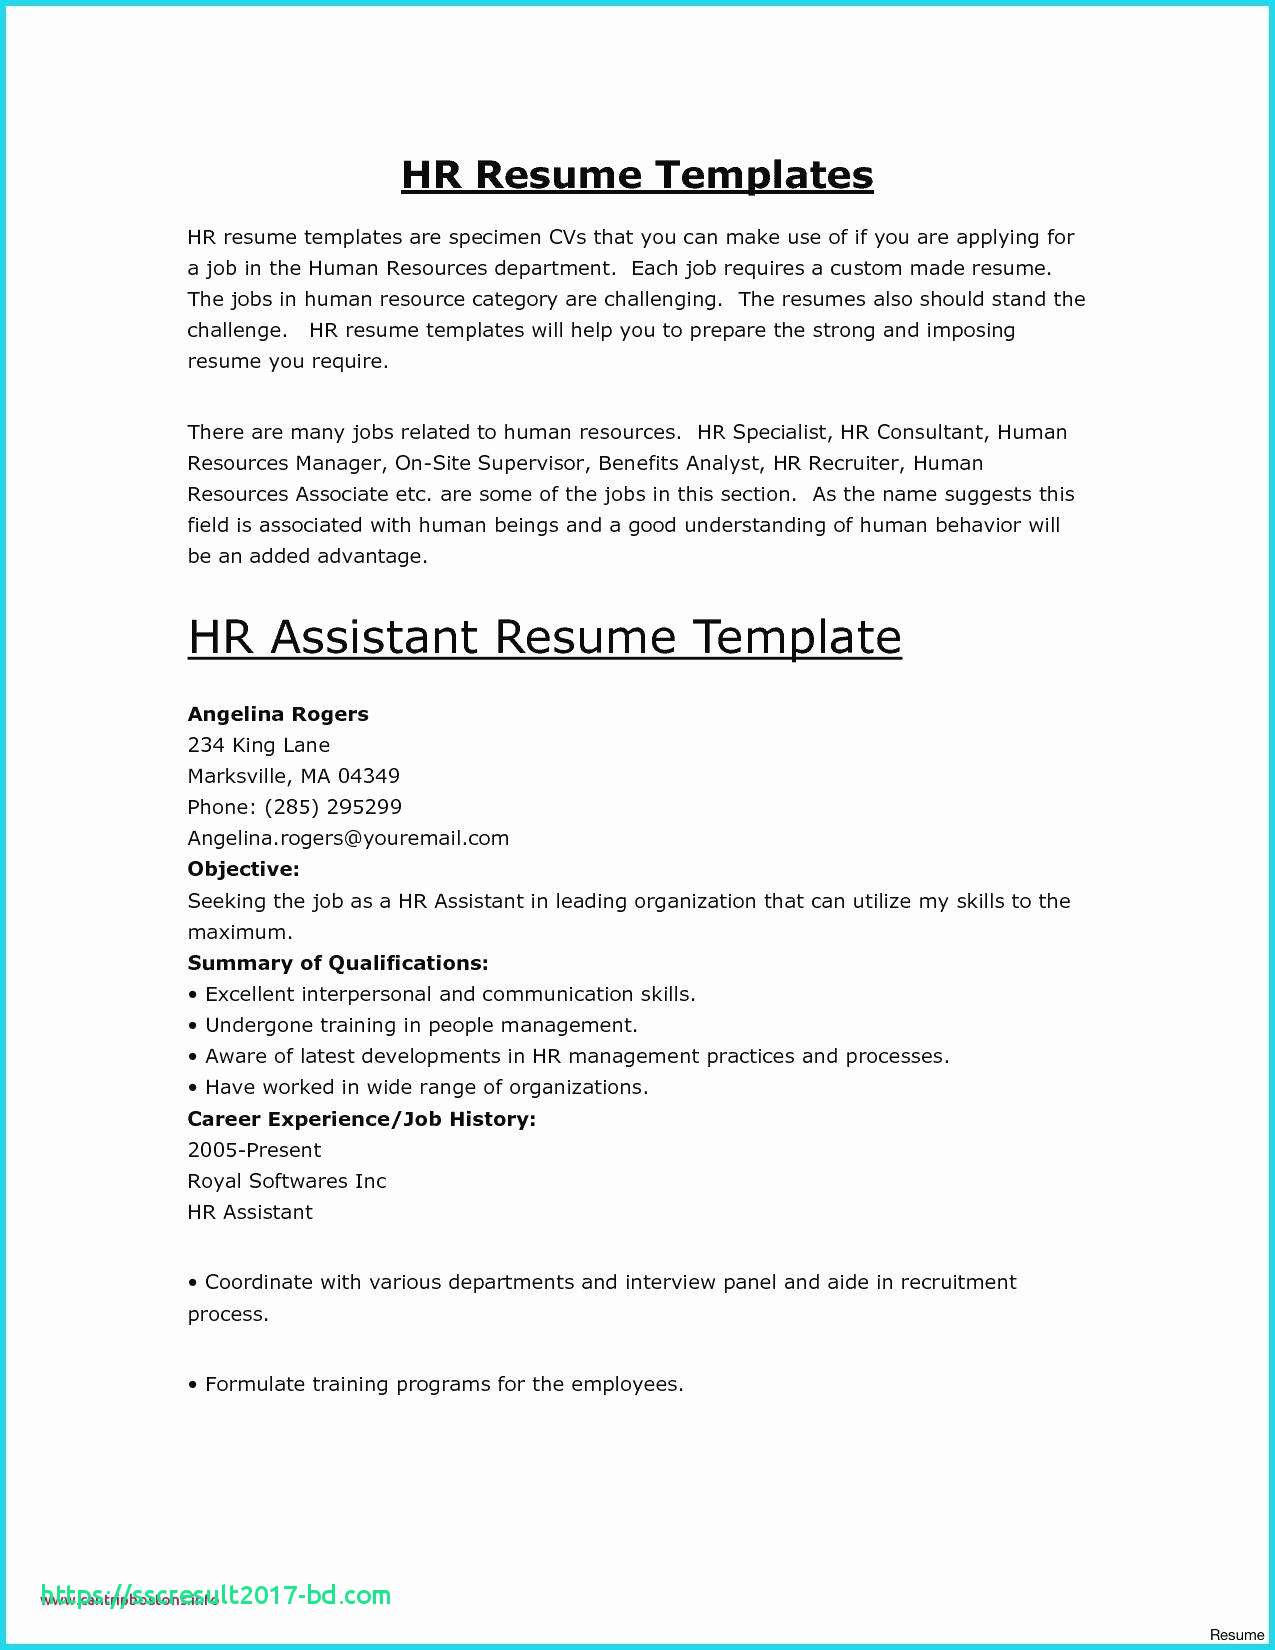 Angularjs Resume Template - How to Get Resume Templates Microsoft Word 2010